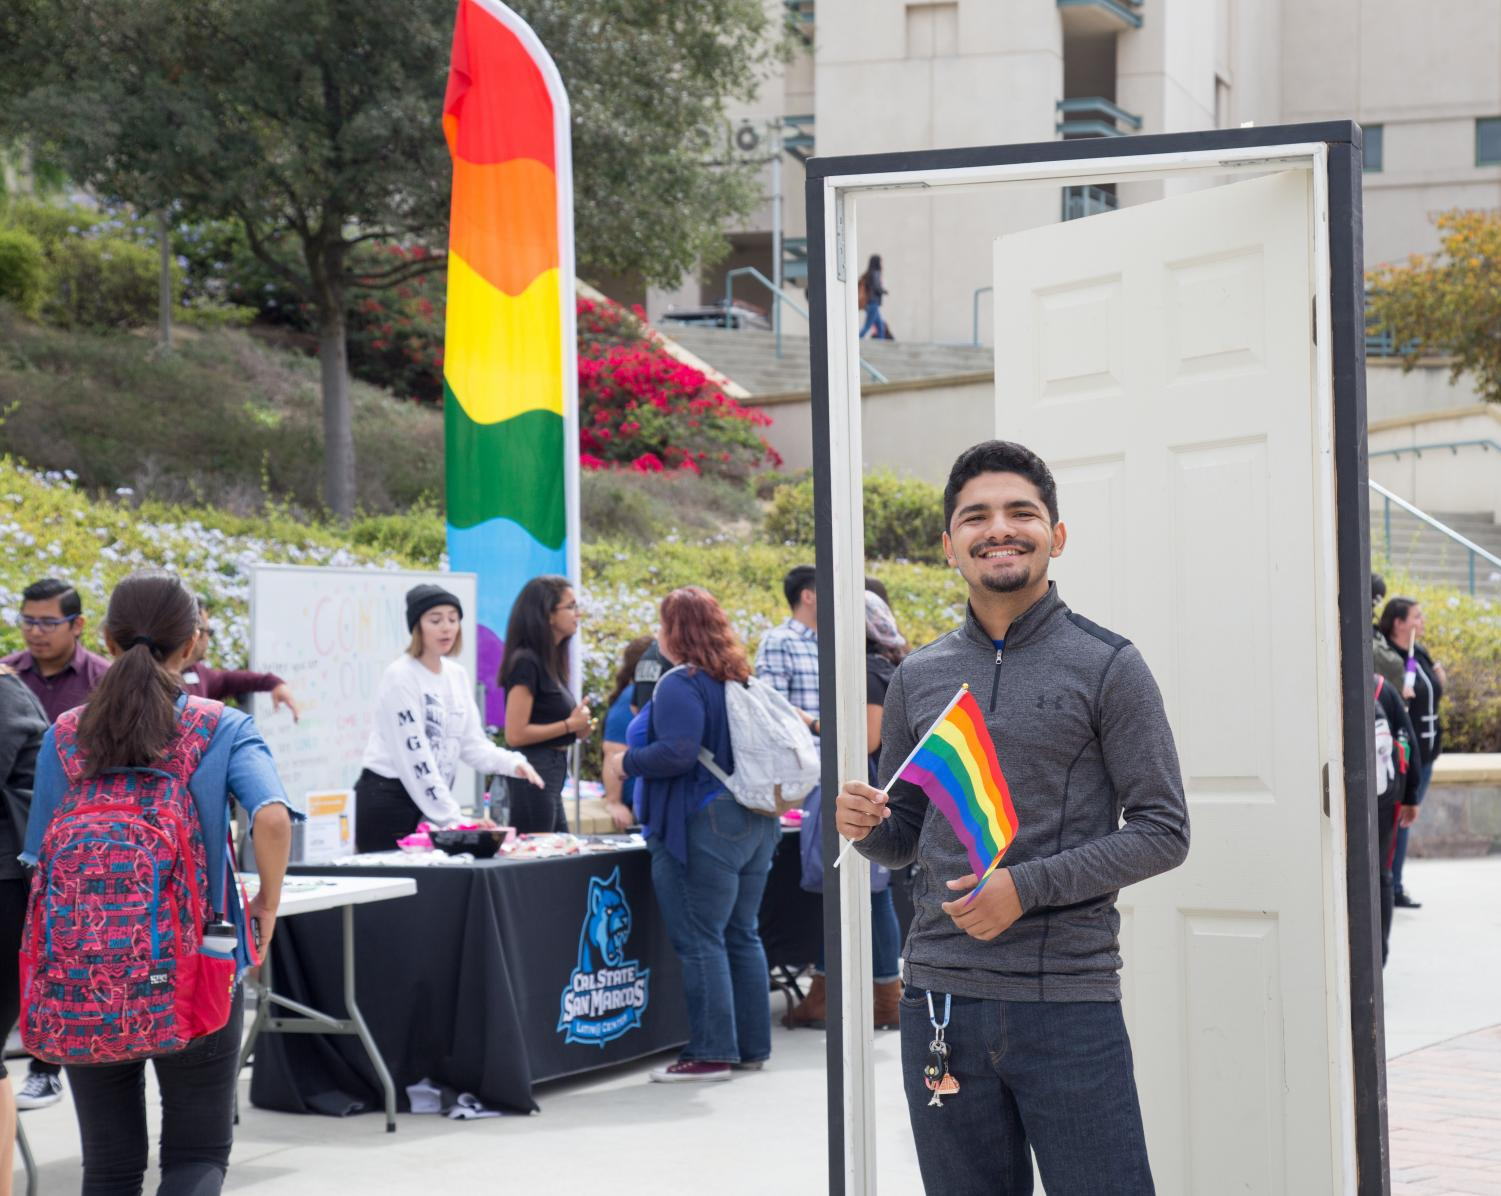 Gabriel Castellanos poses for a photo on National Coming Out Day on Oct. 11.